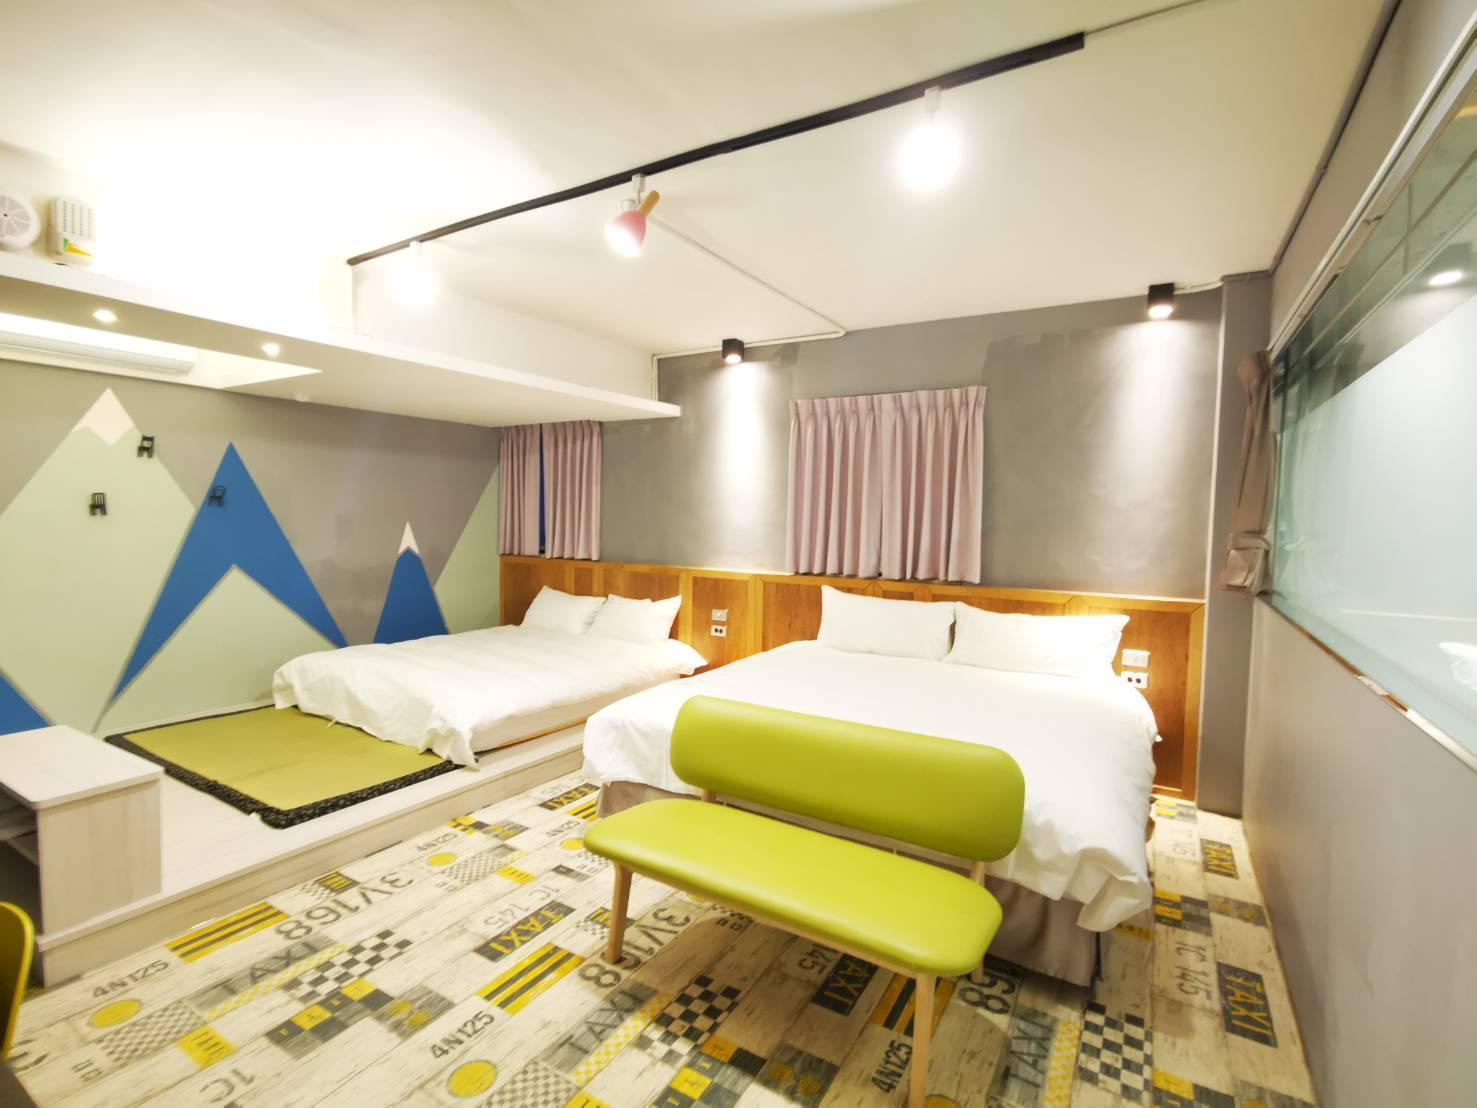 Slow Wow Hot Spring Hotel Yilan Offers Free Cancellation 2021 Price Lists Reviews